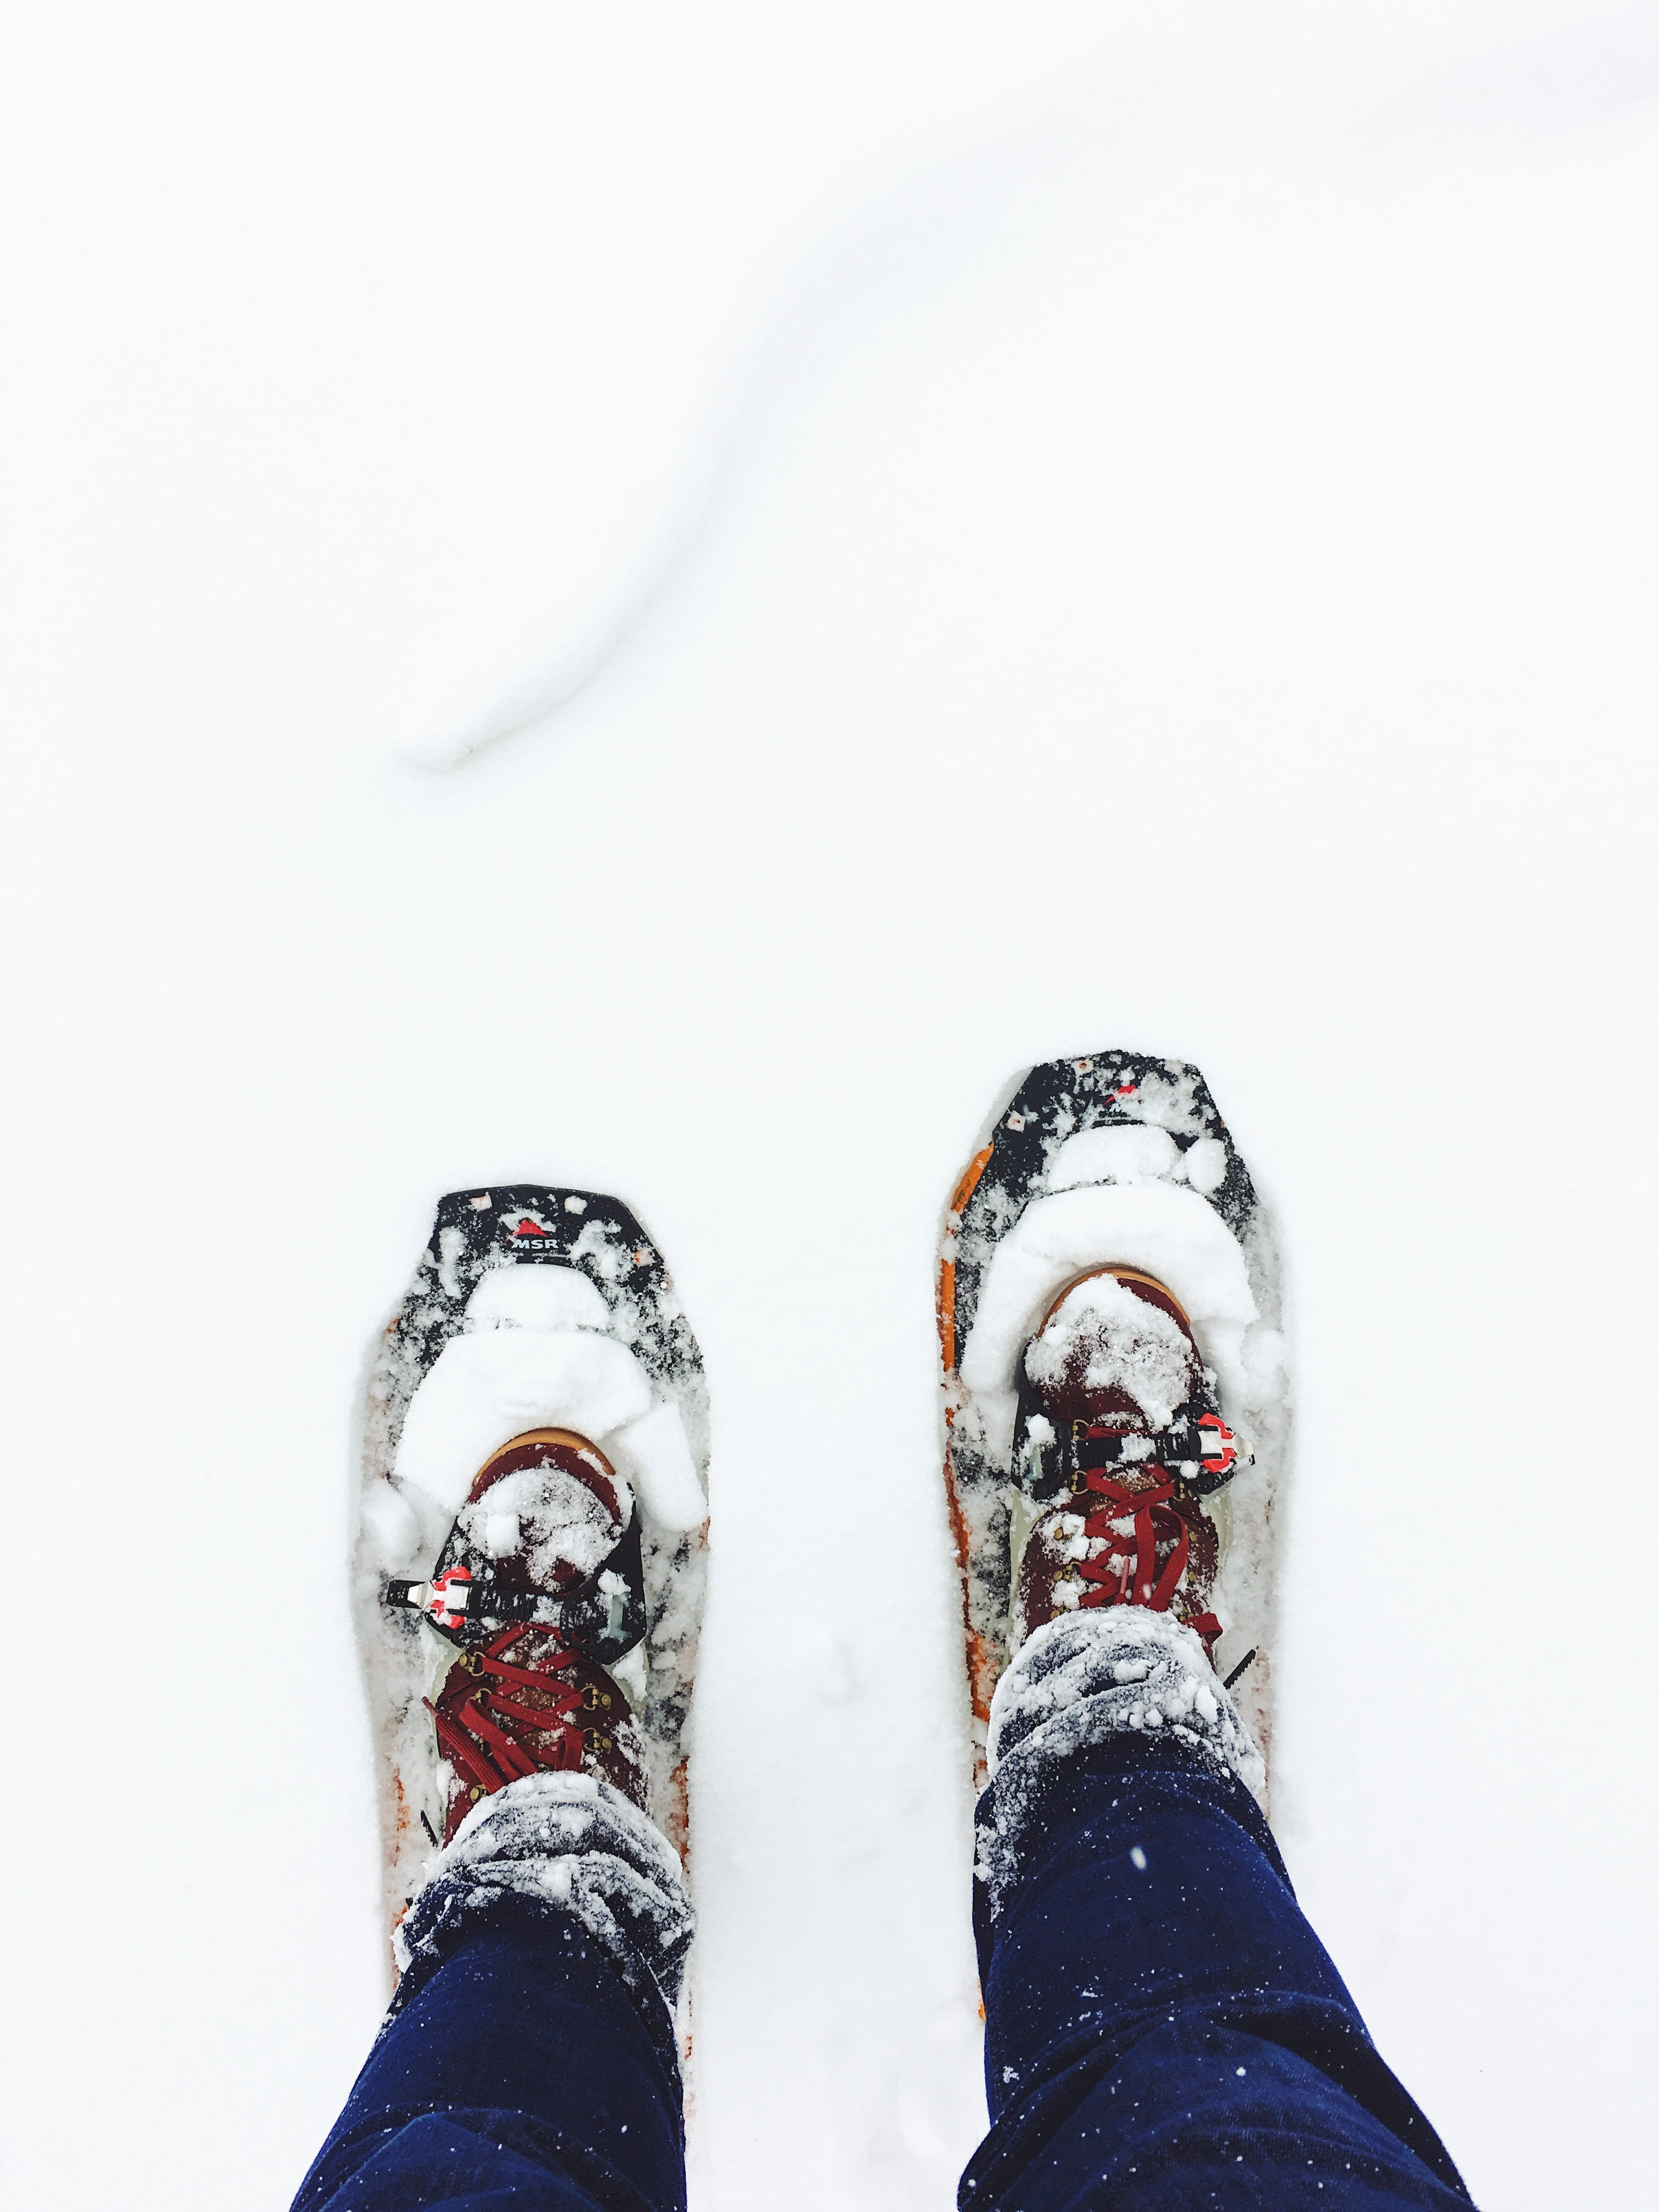 person wearing blue jeans standing on snow